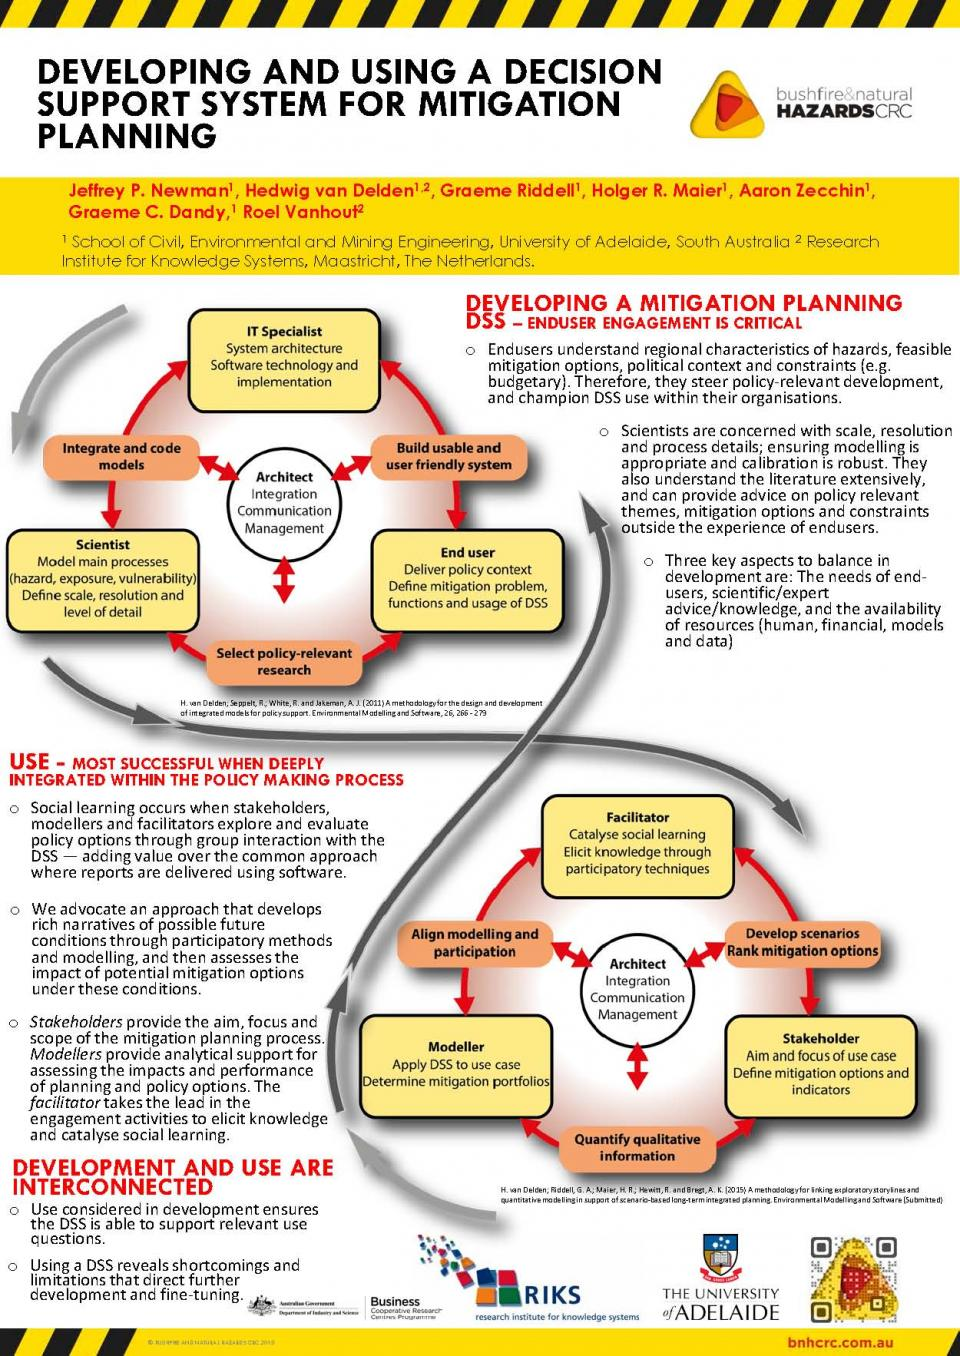 Developing and Using a Decision Support System for Mitigation Planning